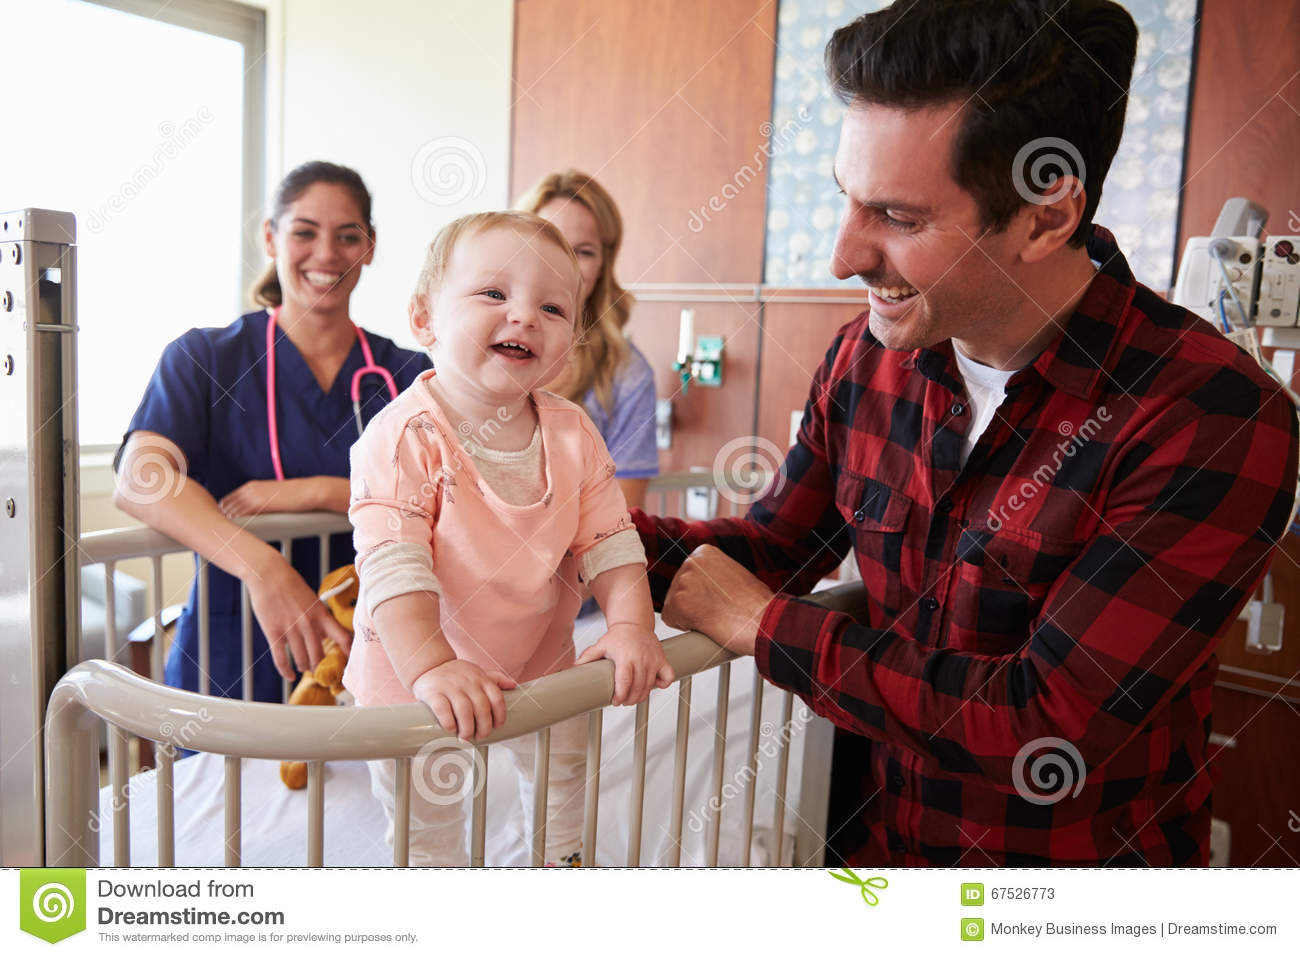 Download Pediatrician Visiting Parents And Child In Hospital Bed Stock Image - Image of parent, consultant: 67526773